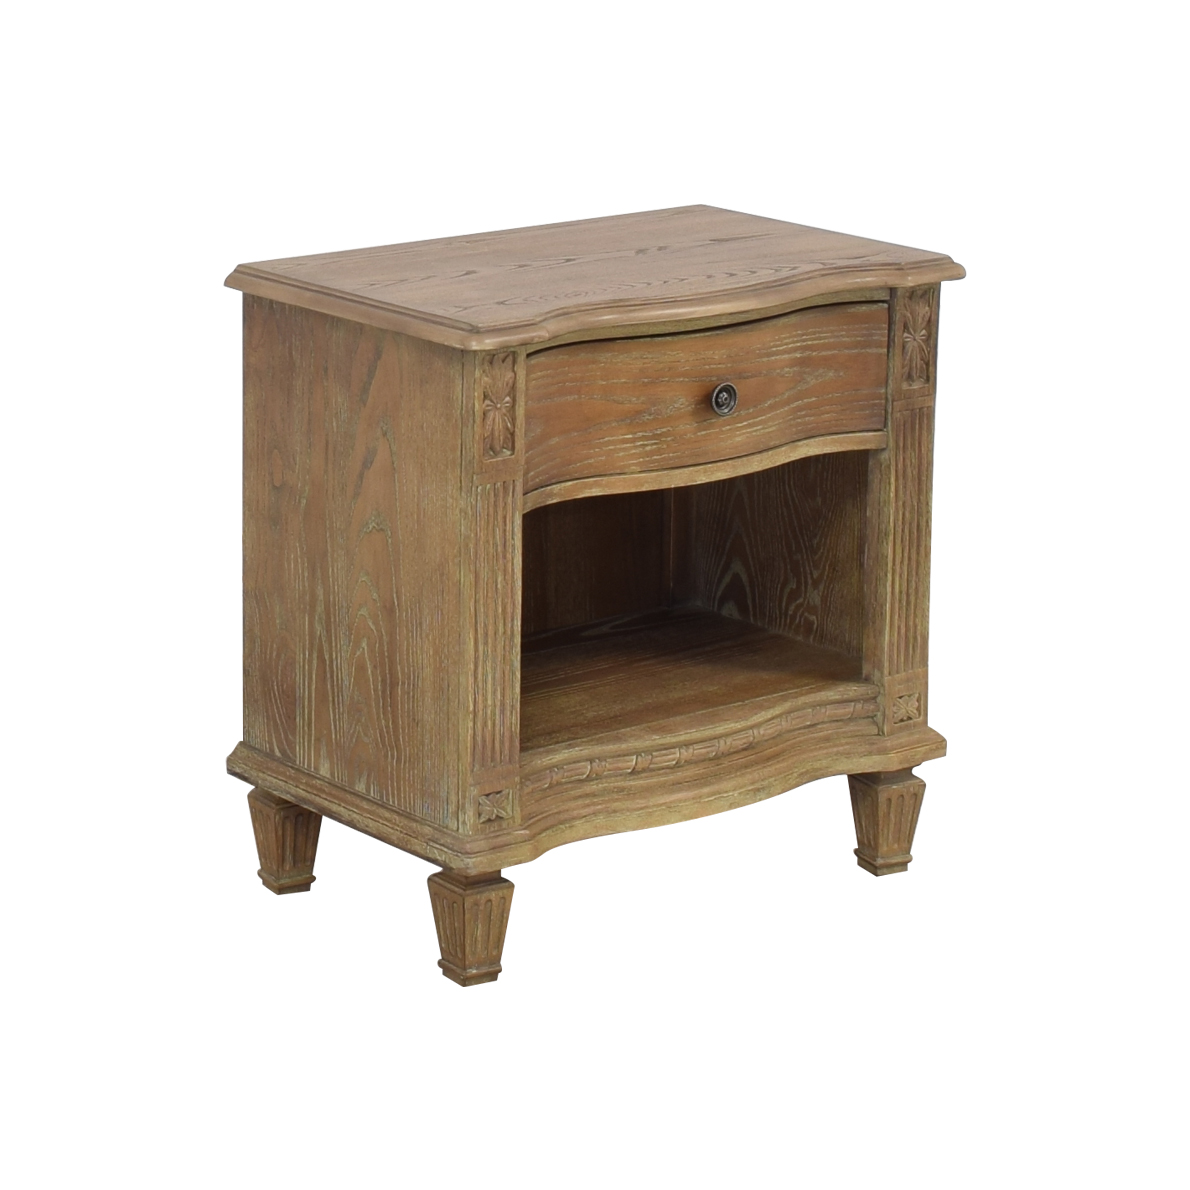 Raymour & Flanigan Raymour & Flanigan Rustic Single Drawer End Table second hand